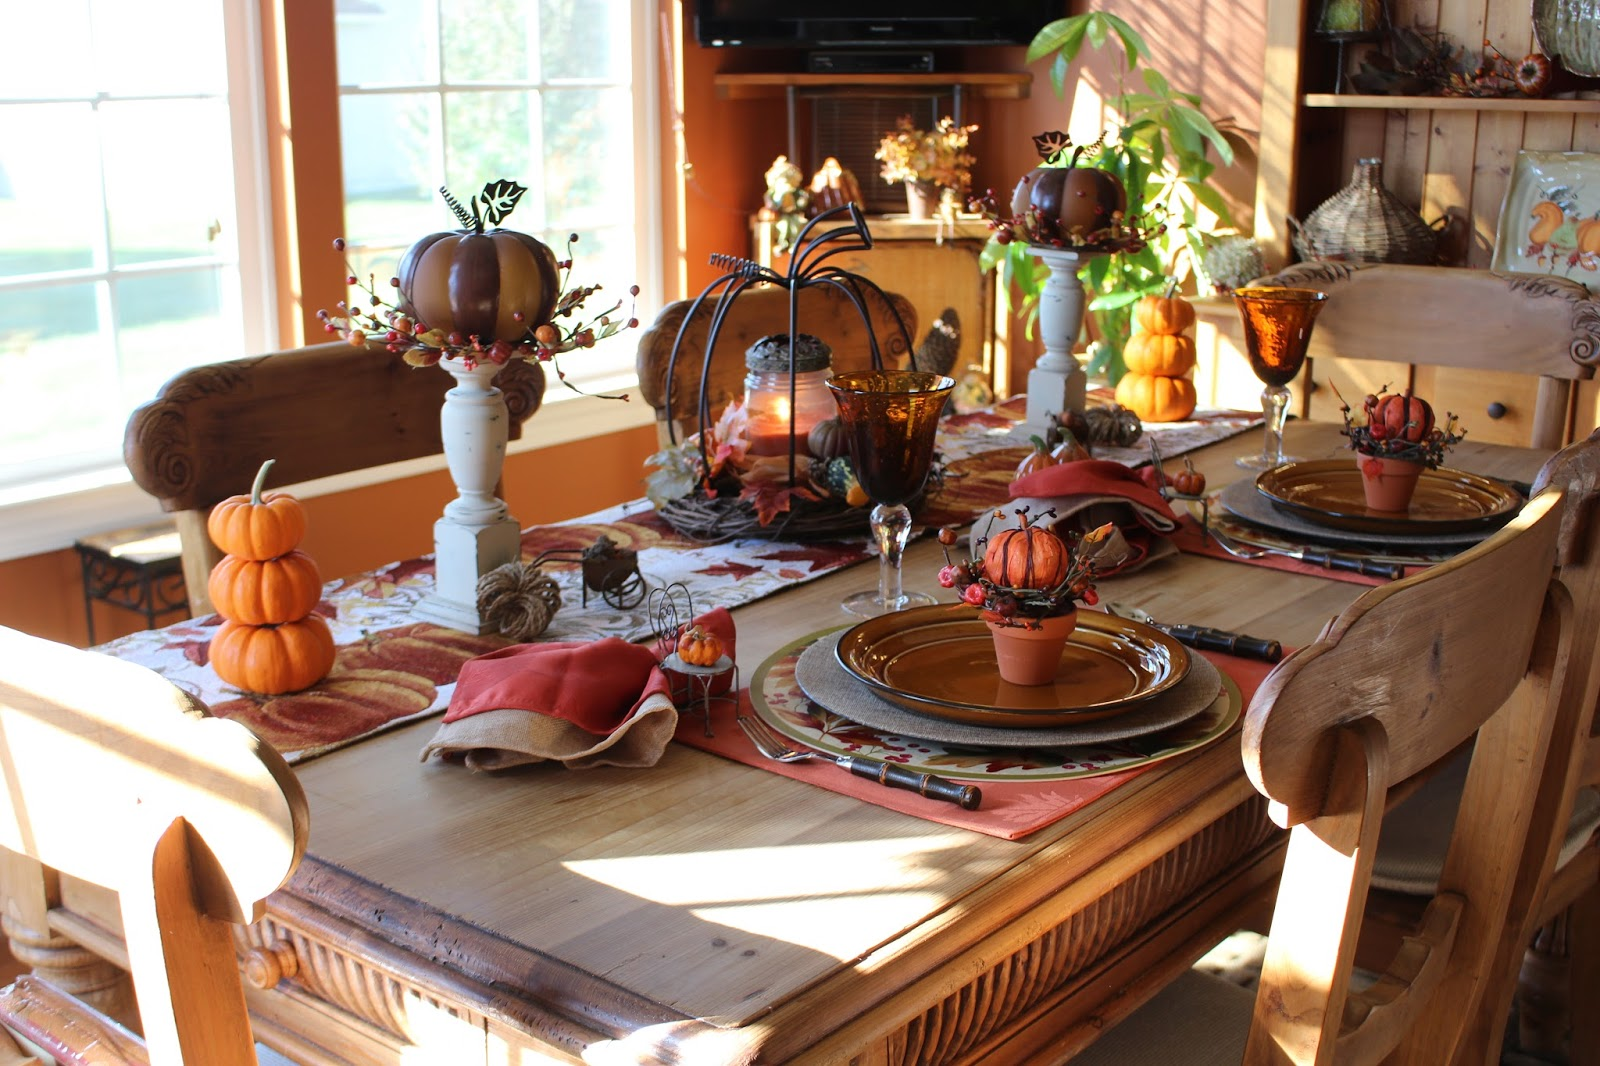 I Am Using A Regular Placemat, Round Placemat, A Burlap Charger, A Leaf  Dinner Plate And My Pumpkin Salad Plate. On Top Of Al That Is A Small Clay  Pot ...